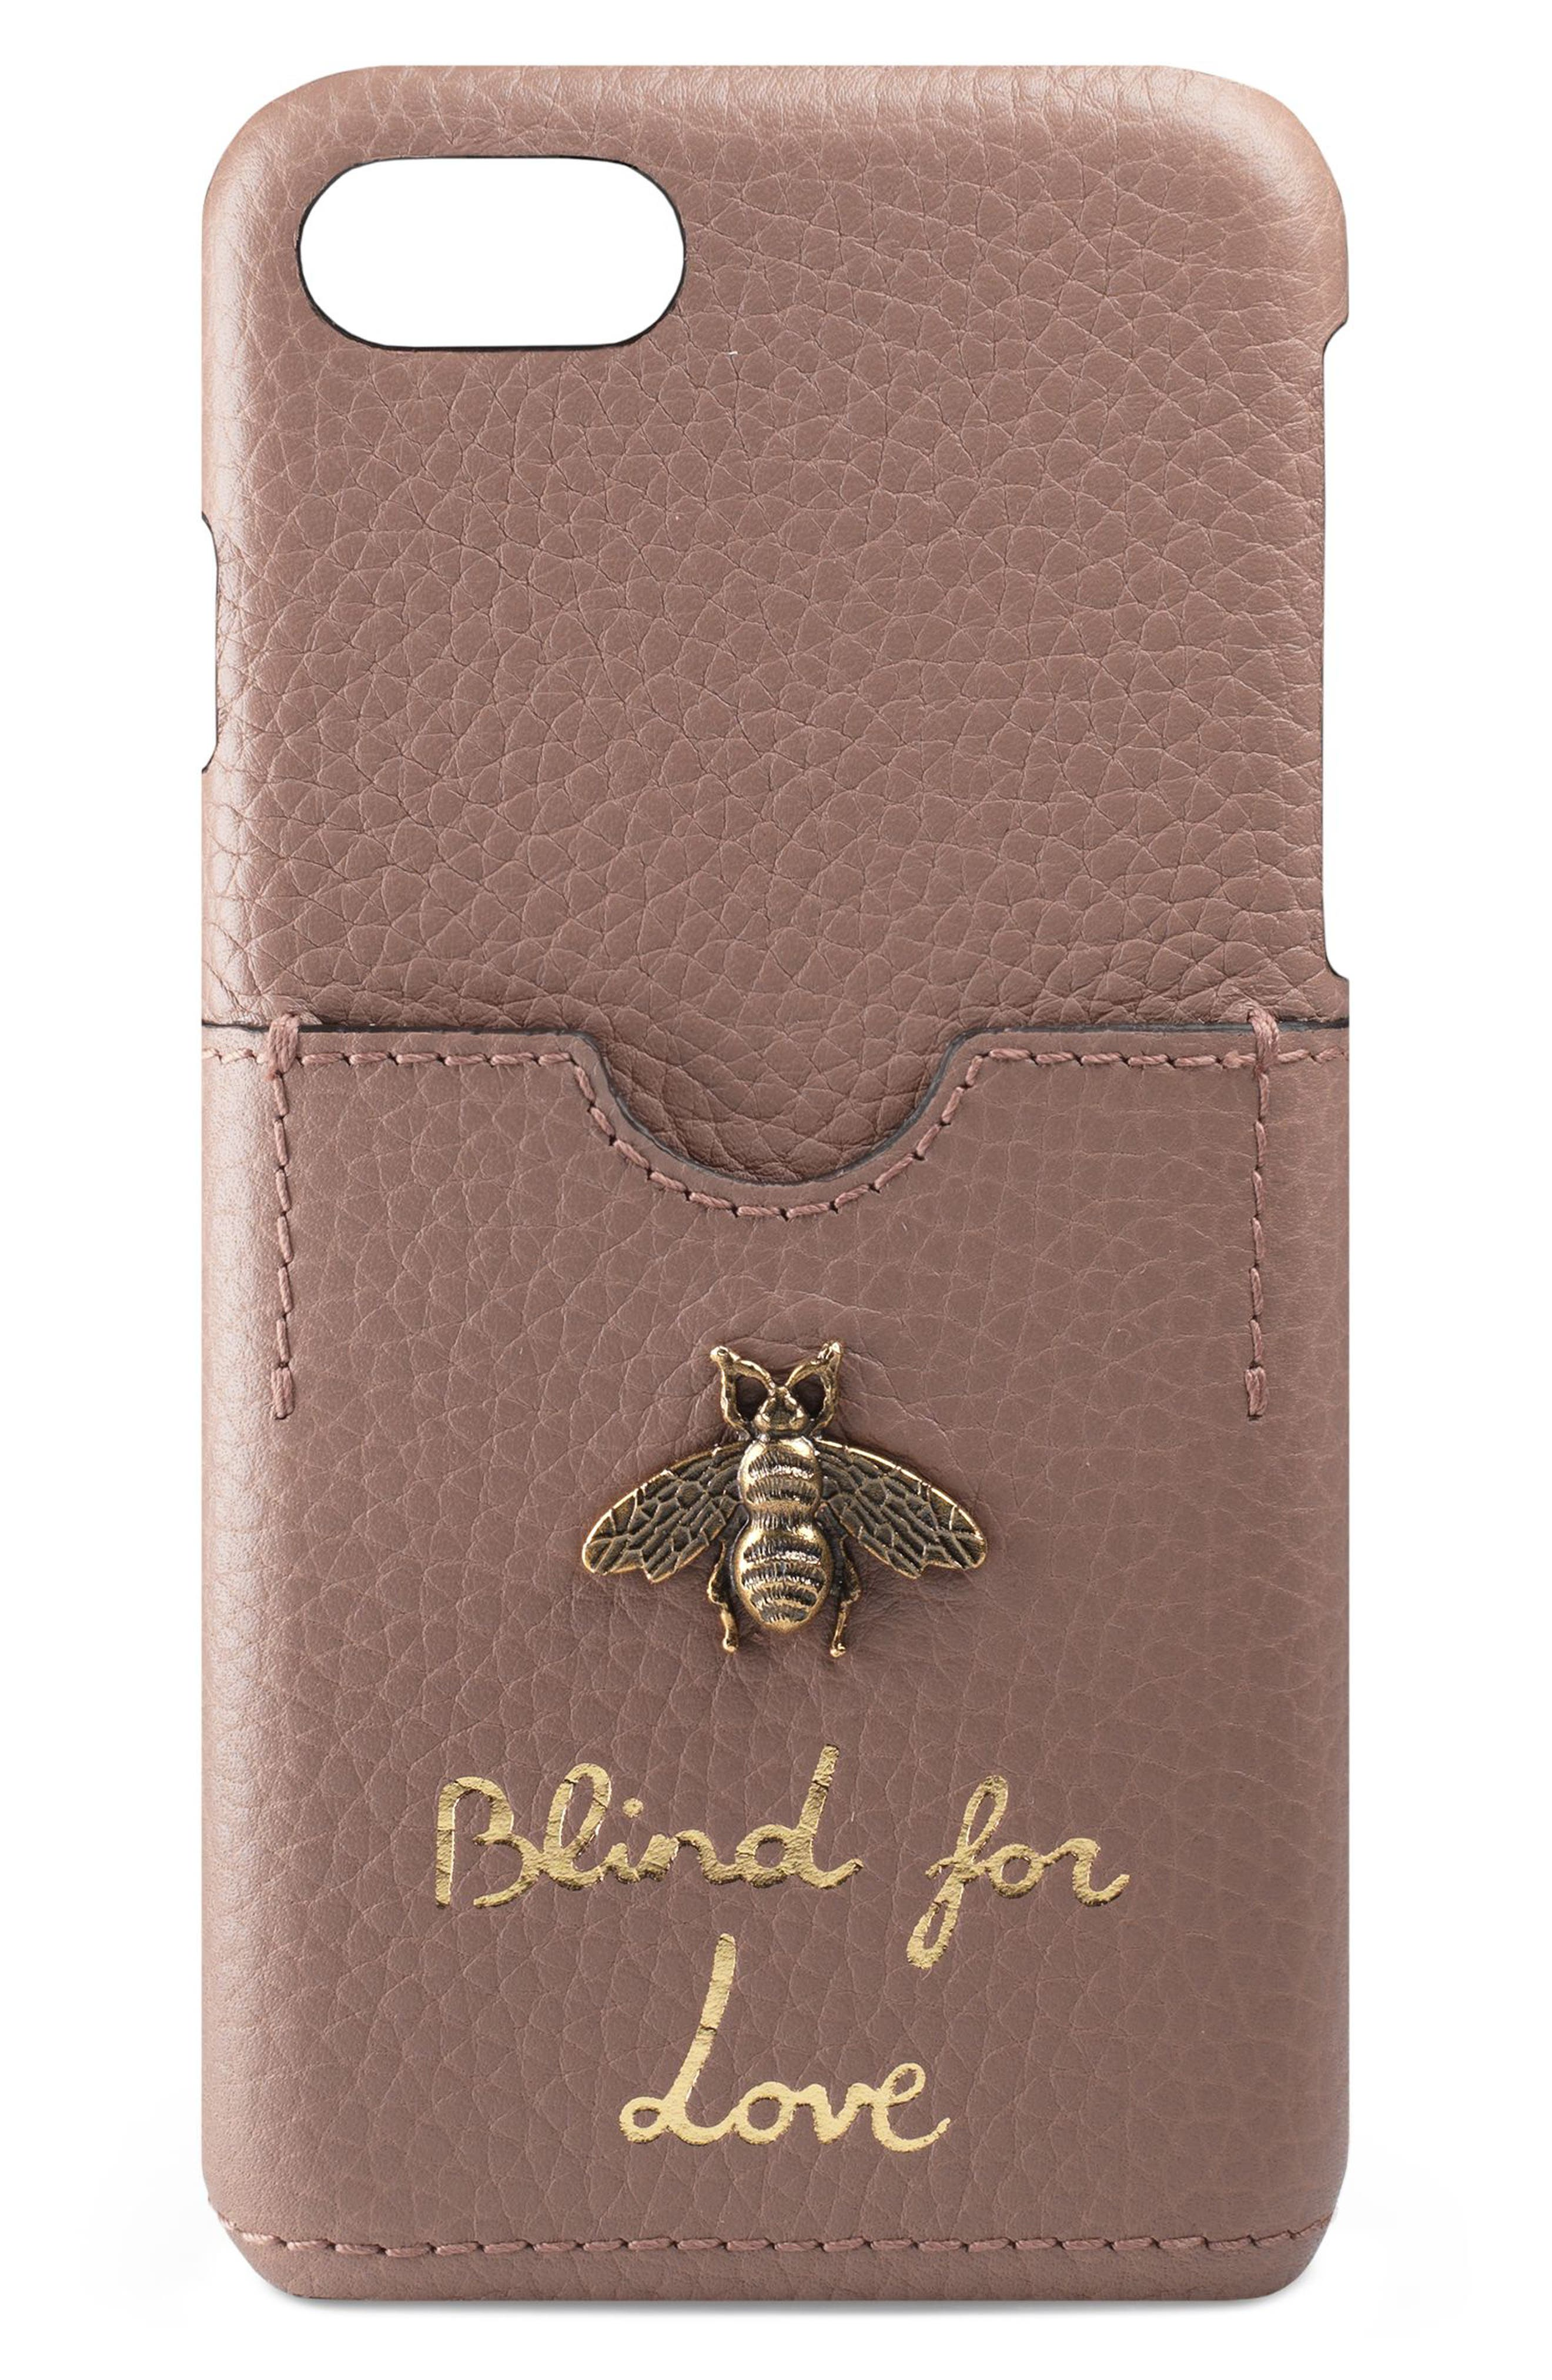 Animalier Bee Leather iPhone 7 Case,                             Main thumbnail 1, color,                             PORCELAIN ROSE